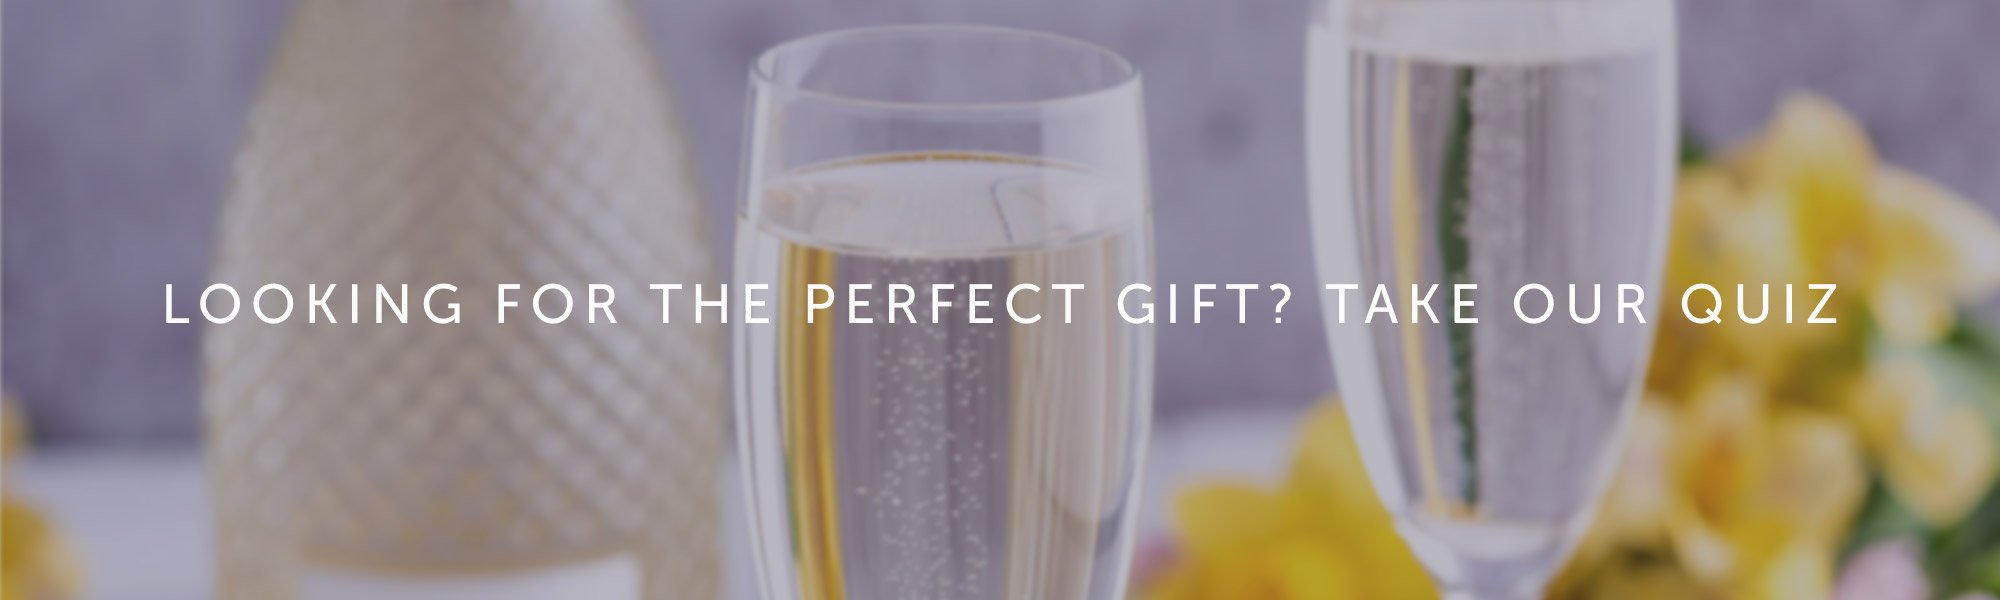 Looking for the perfect gift? Take our quiz